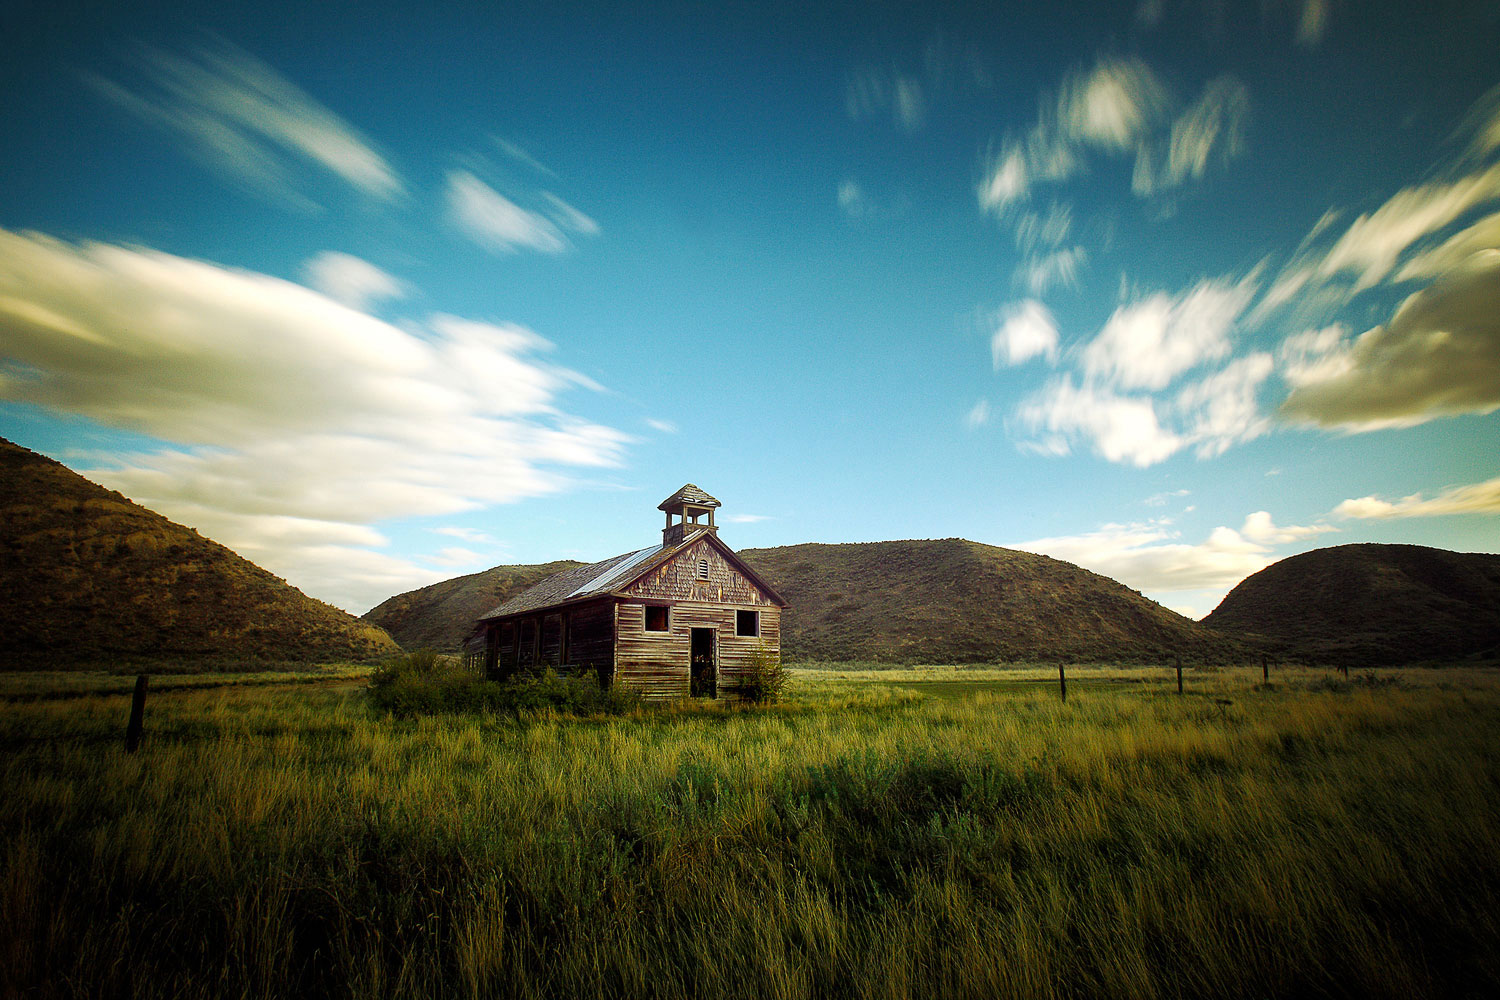 An old, weathered schoolhouse or church tucked between the hills outside of Loma, Montana.  → Buy a Print